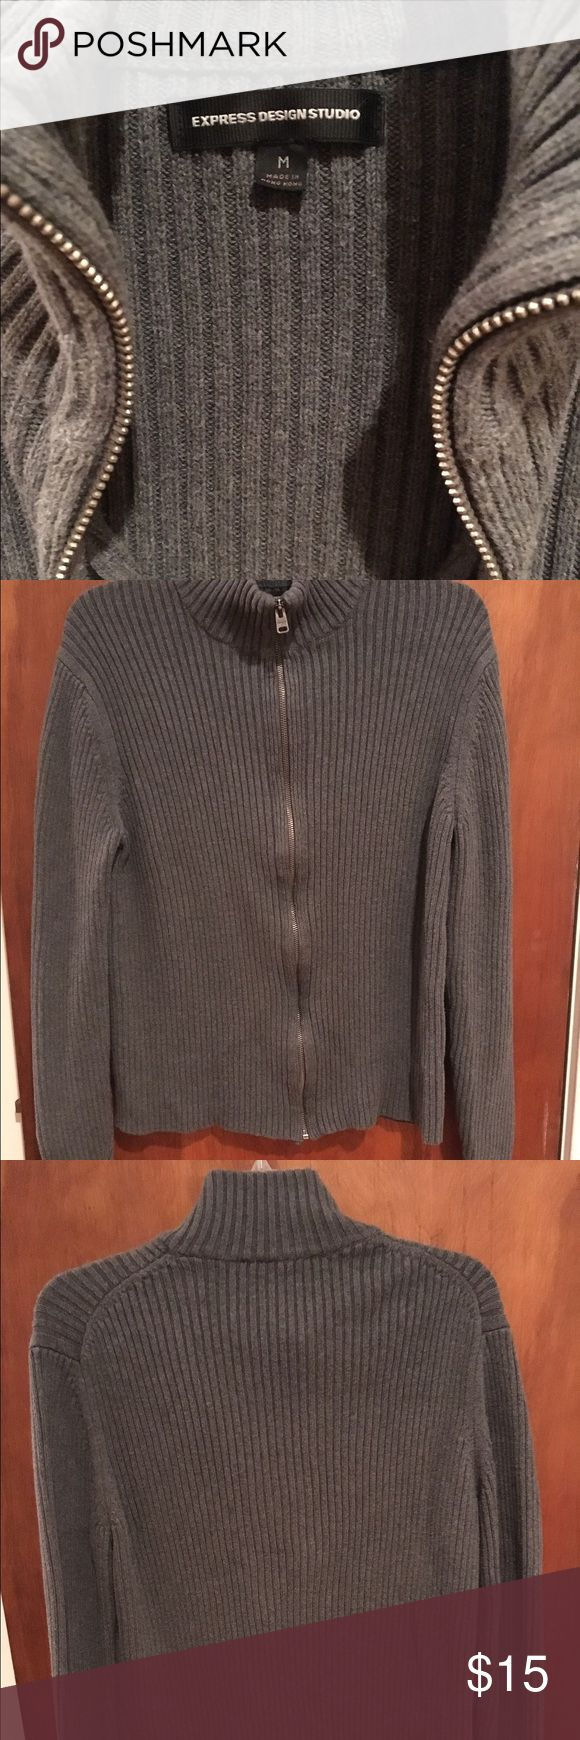 👔Express Men's Zip Cardigan Warm and cozy, good condition. A staple for any casual or professional wardrobe! Express Sweaters